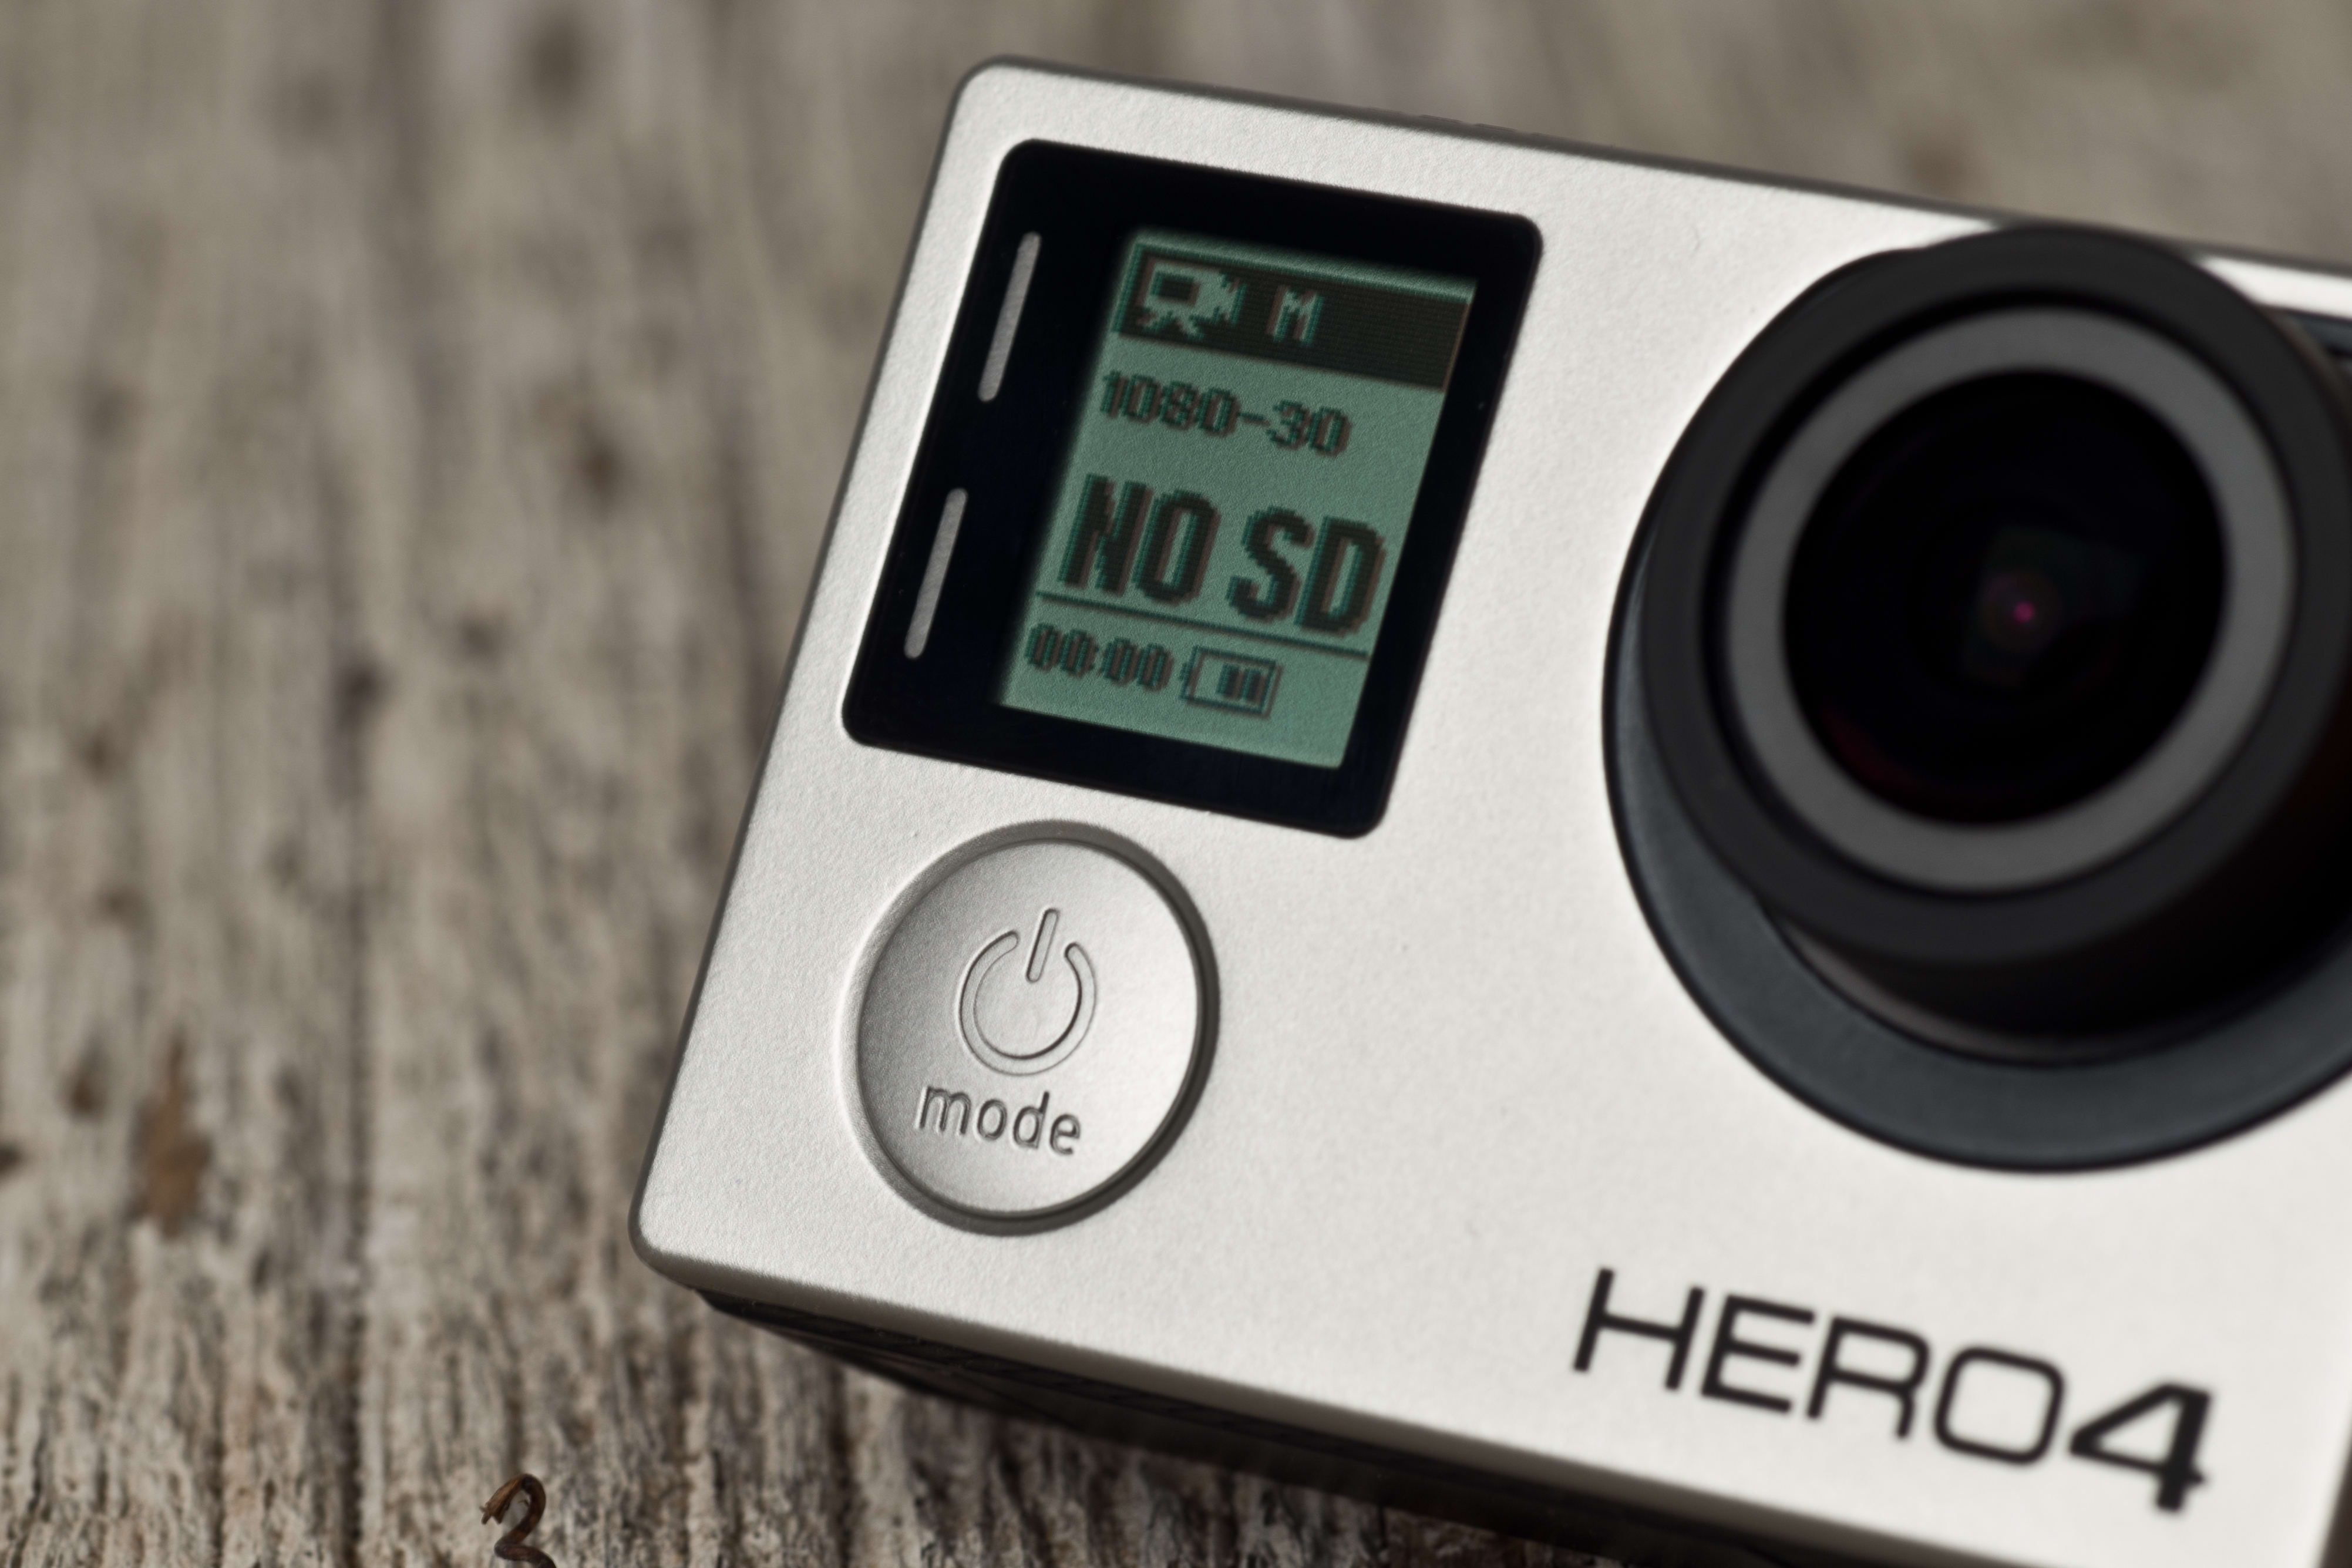 A photograph of the GoPro Hero 4 Black's power button.